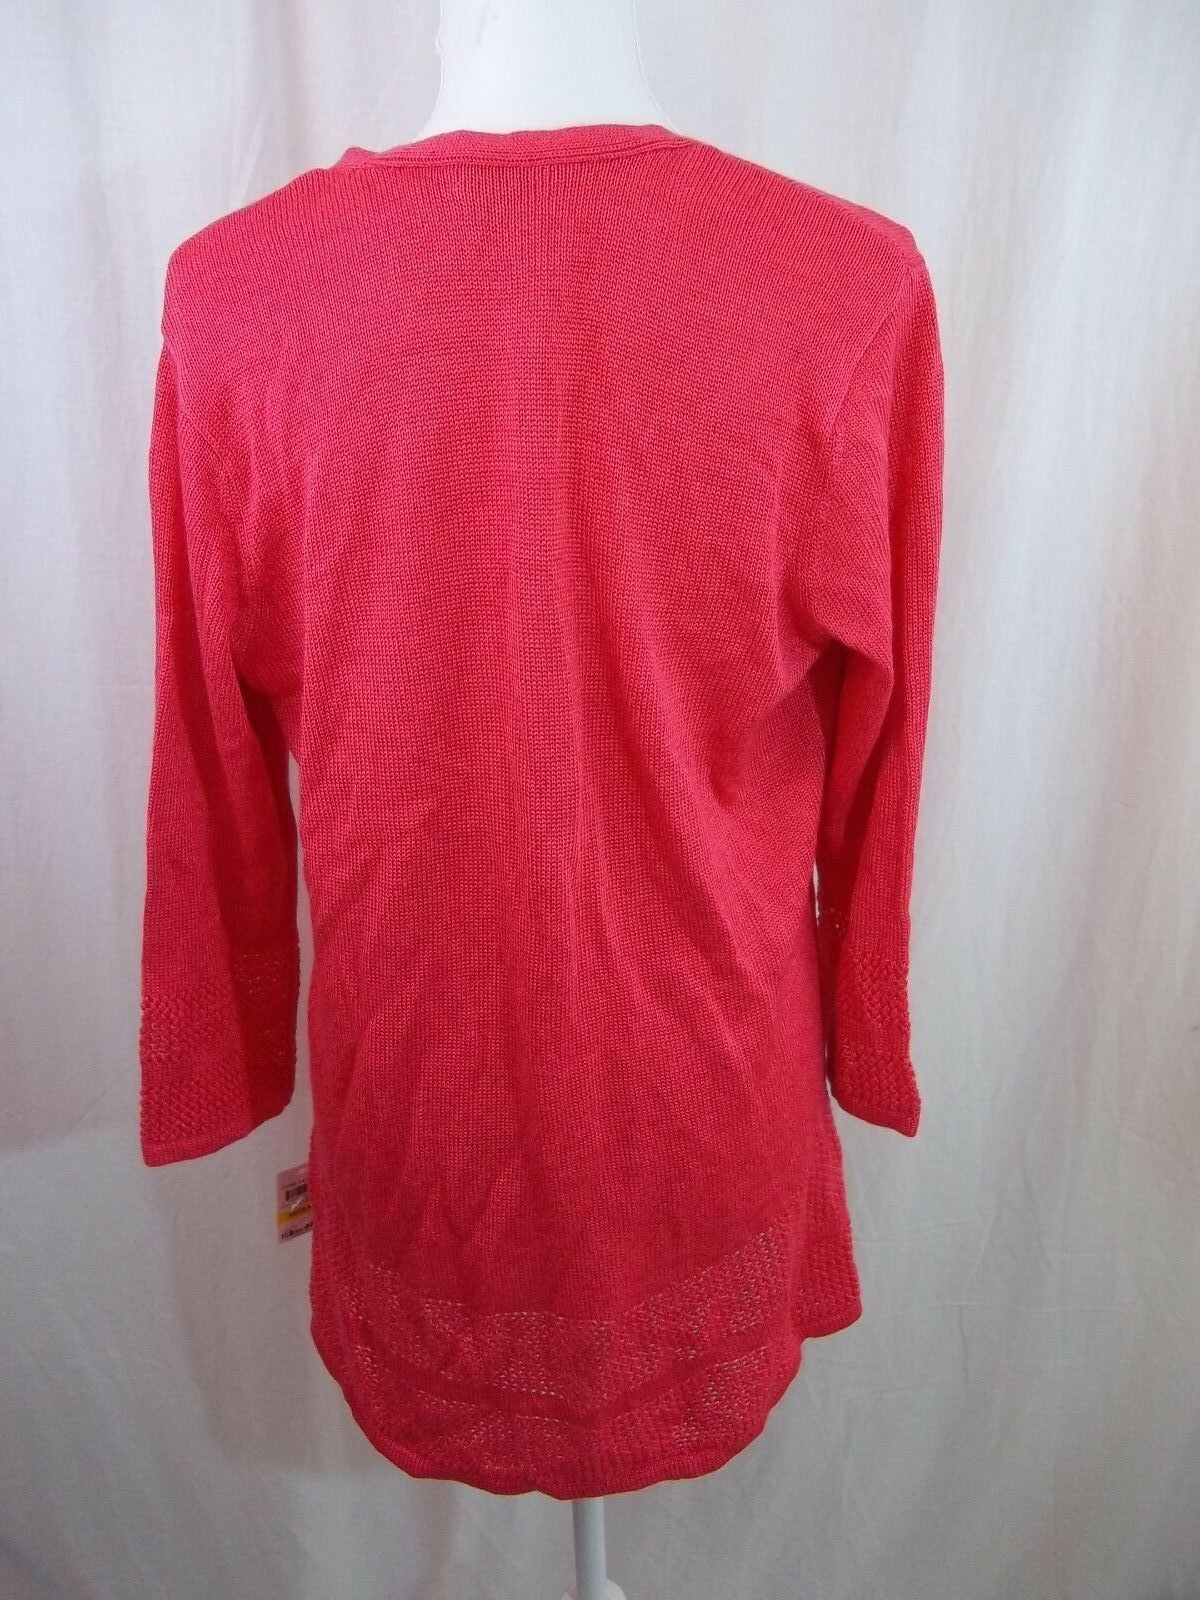 Charter Club Club Club Women's Cardigan Sweater Open Front Coral Size M 3 4 Sleeve NWT New f071b1